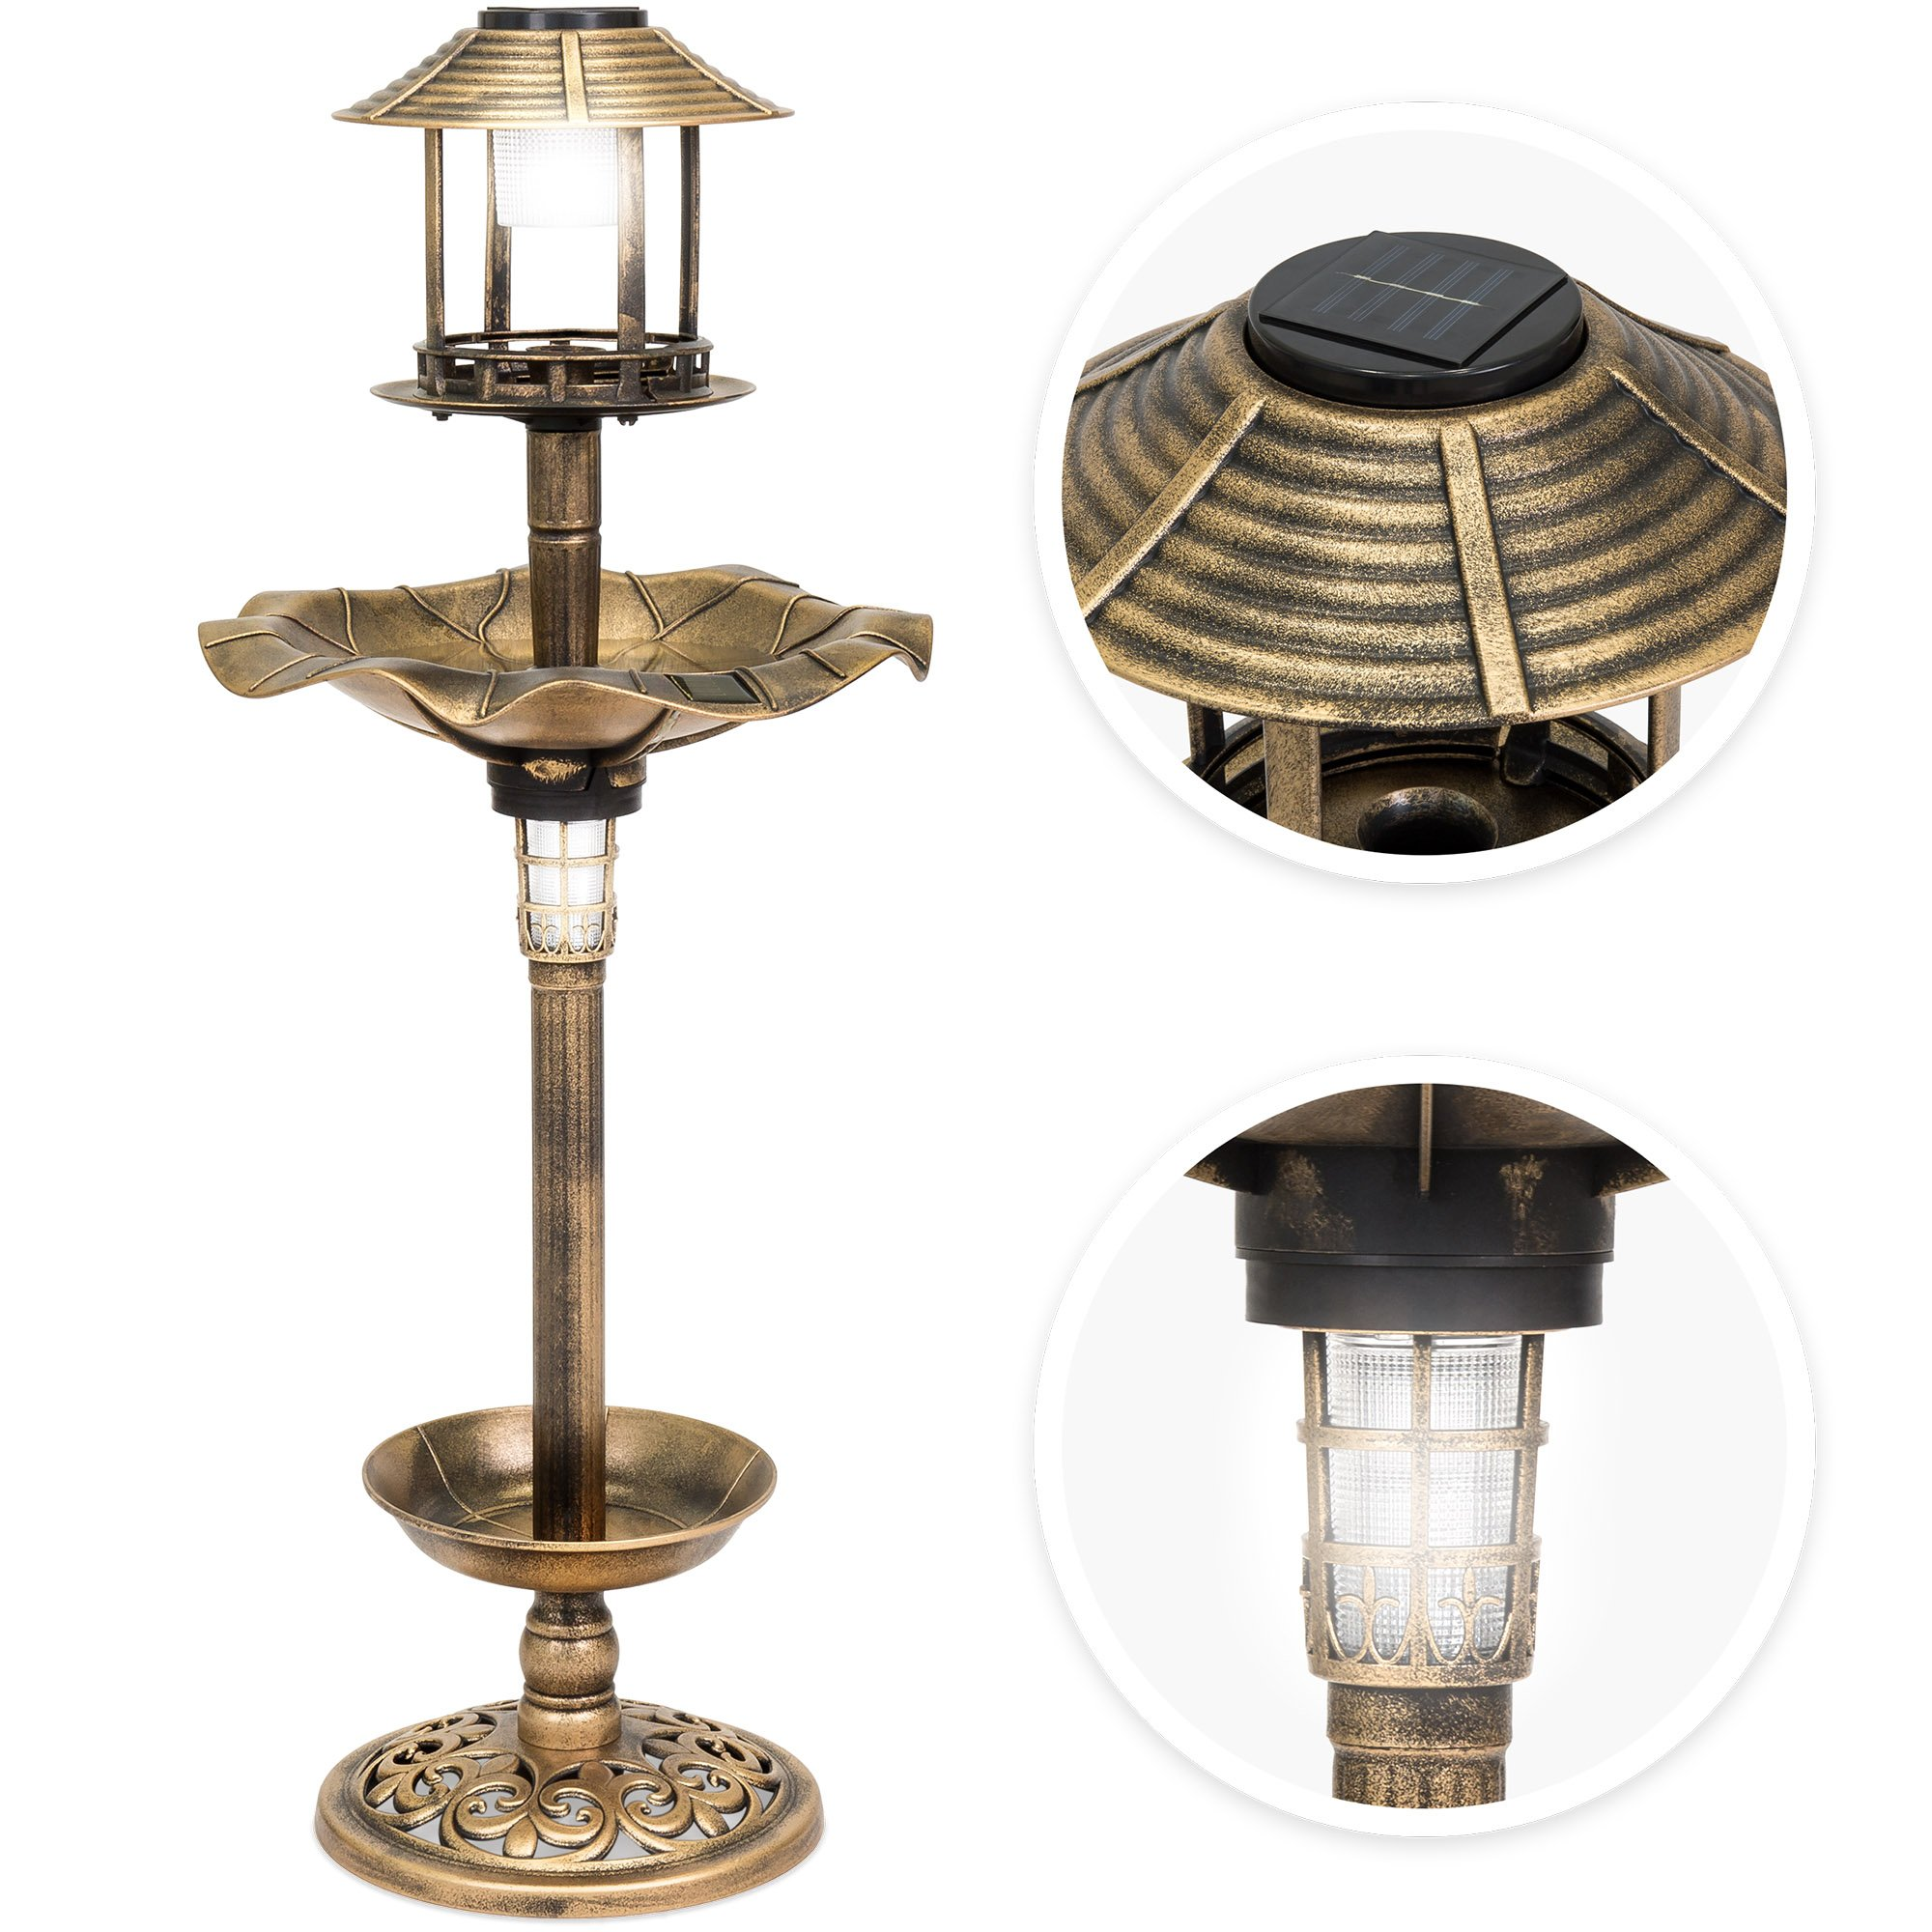 Best Choice Products Decorative Garden Solar-Powered LED Pedestal Bird Bath Feeder w/Planter, Lamp Topper - Bronze by Best Choice Products